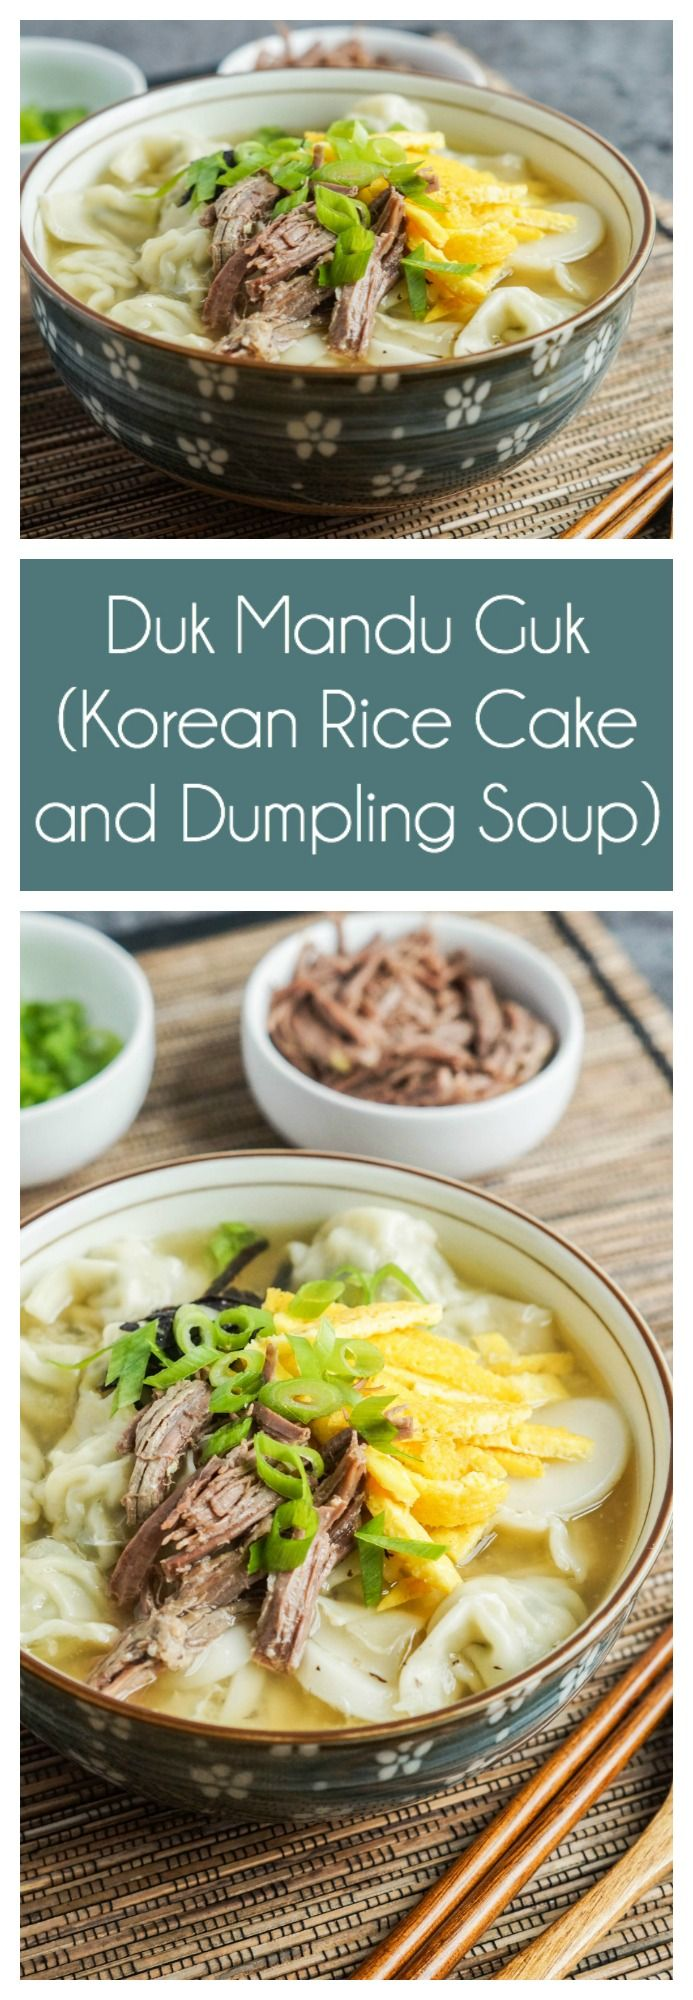 Duk Mandu Guk, a warming Korean soup with rice cakes and dumplings, is one of my favorite Korean dishes. It has a little bit of everything- a lightly seasoned broth, chewy rice cakes, and filling d…